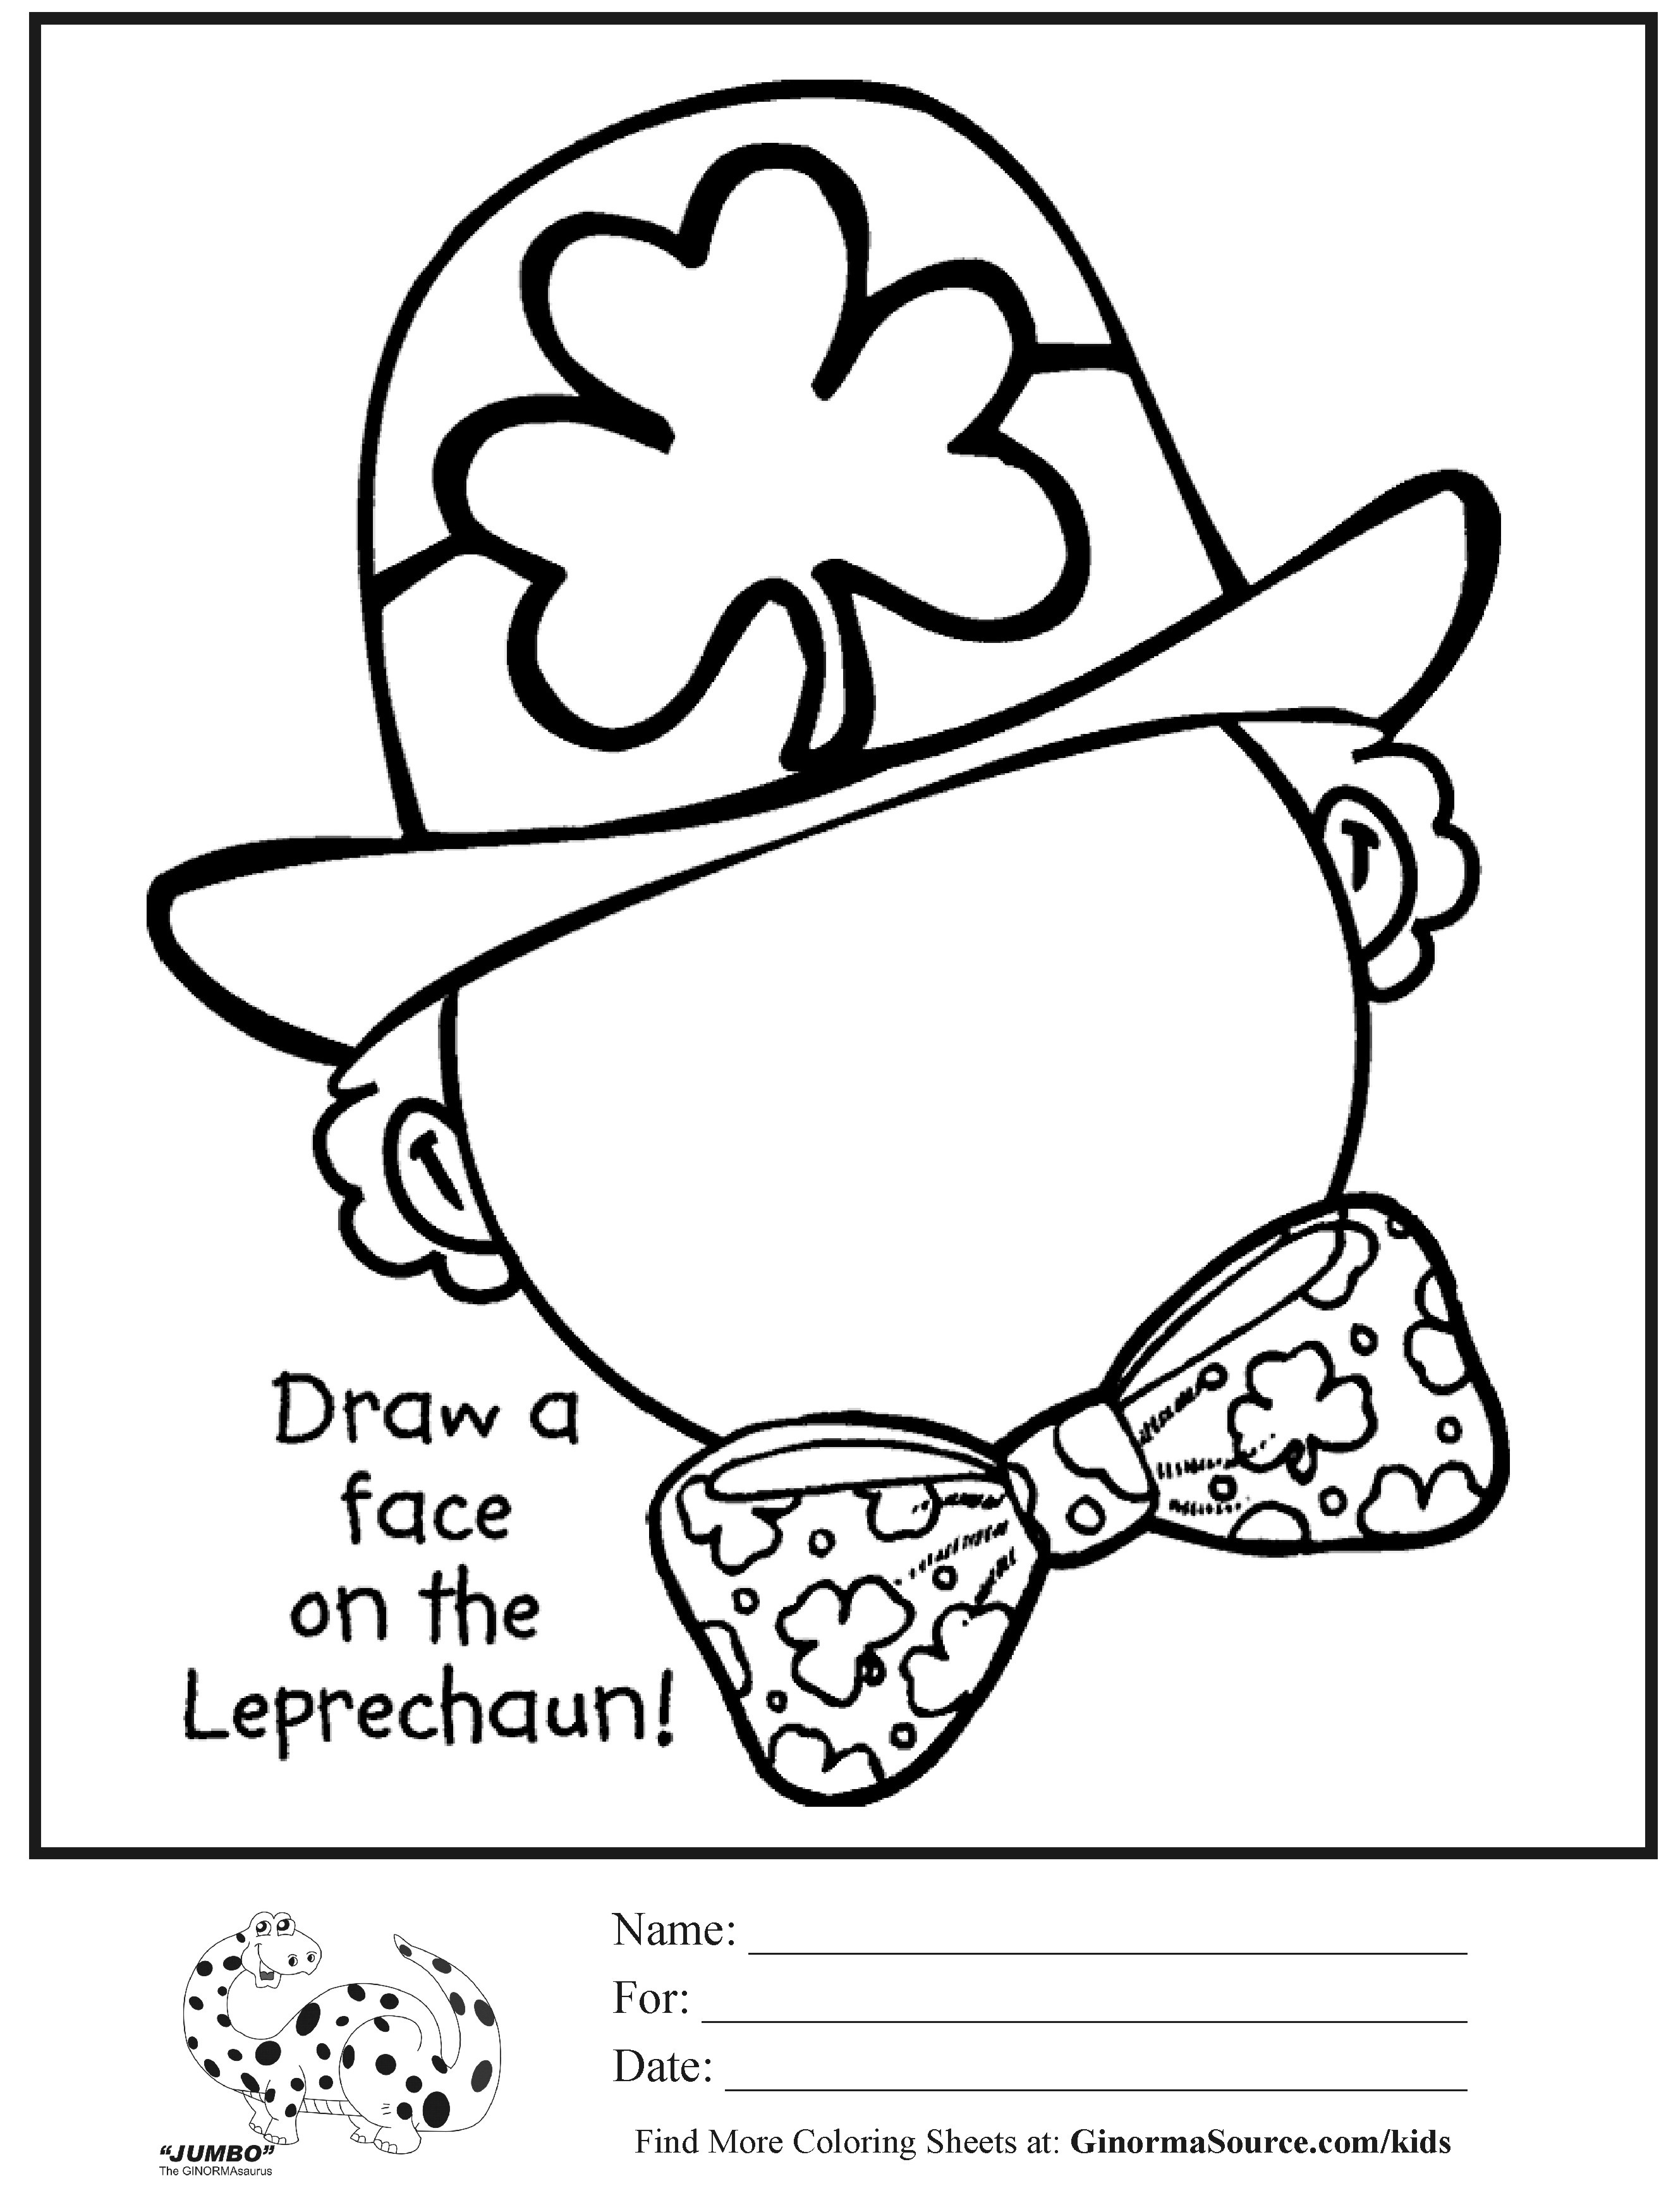 Free St Patricks Day Drawings, Download Free Clip Art, Free Clip Art - St Patrick's Day Printables Free